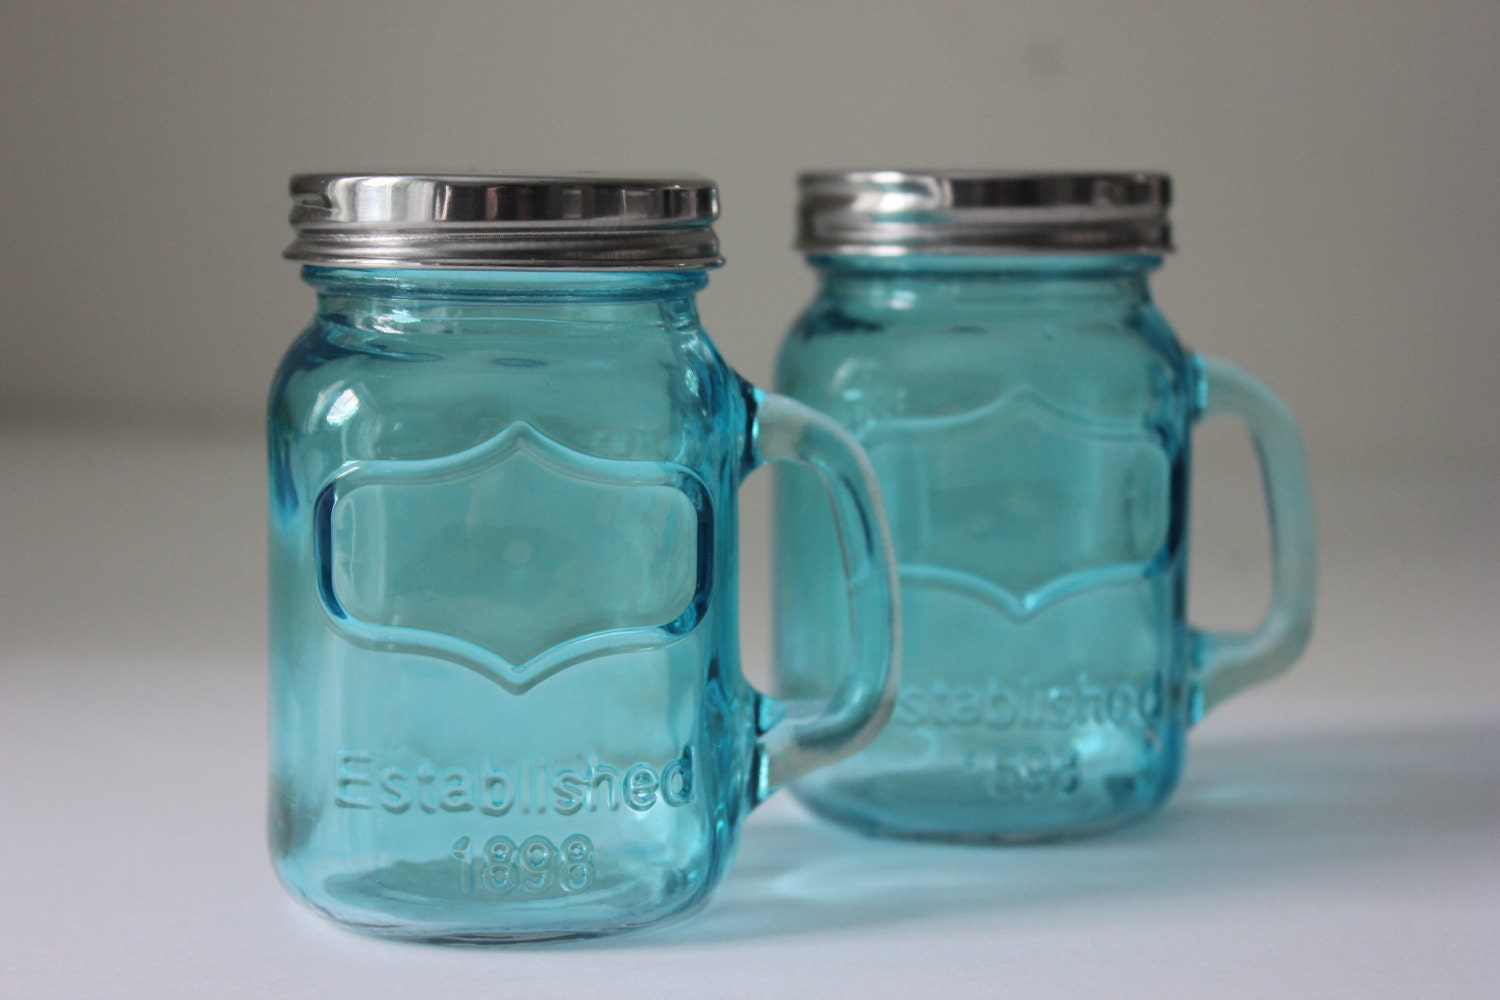 2 Blue Mason Jar Mini Salt Pepper Shakers Mugs By